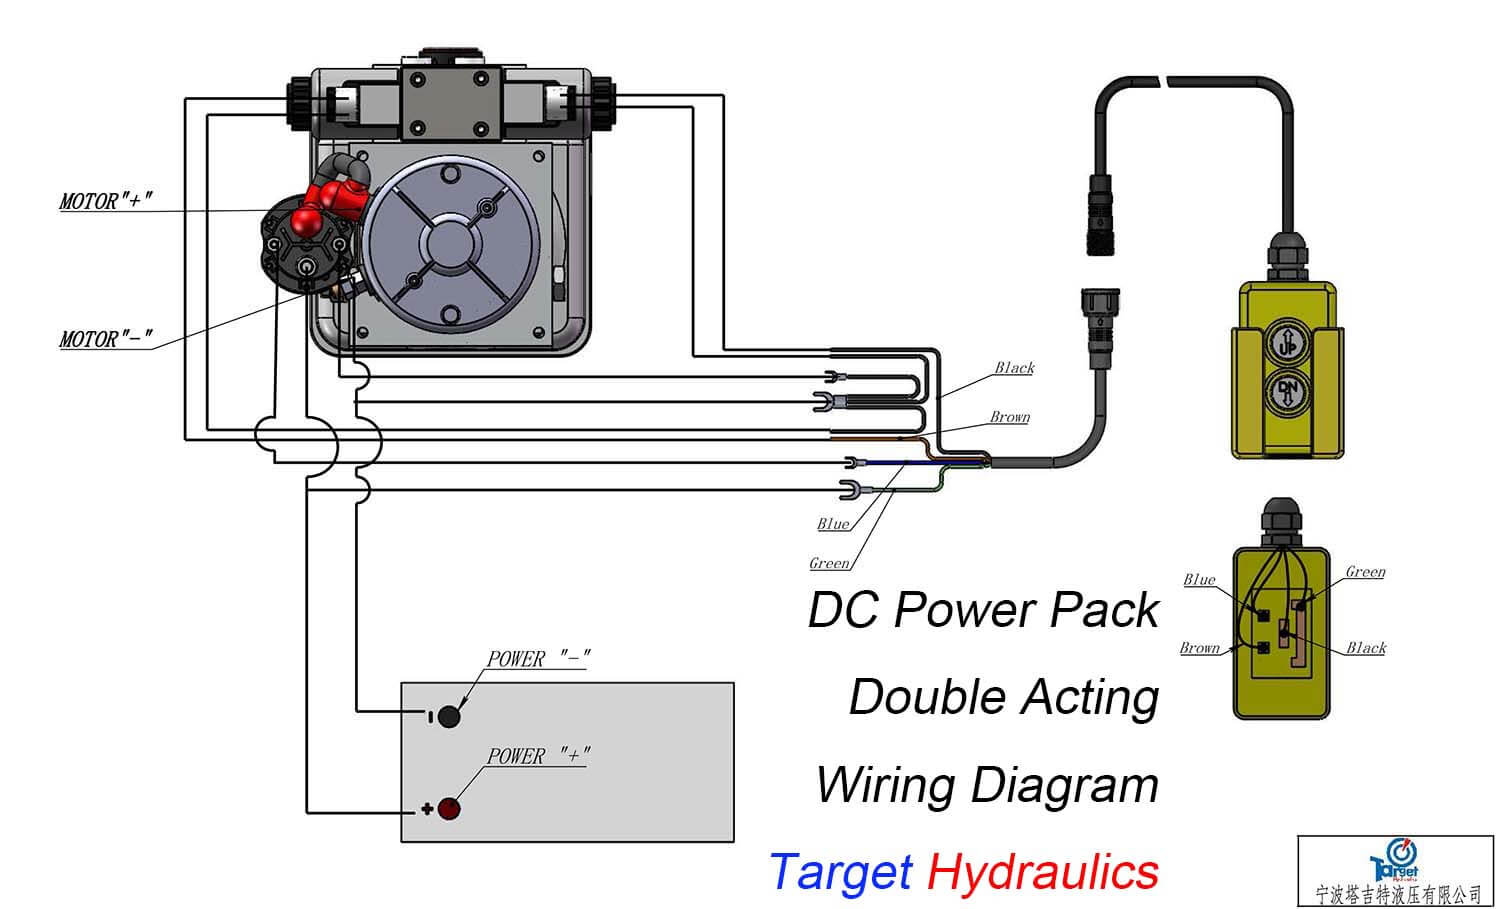 How to Wire_DC Motor Double Acting Power Pack how to wire hydraulic power pack,power unit diagram design 110 Power Cord Diagram at sewacar.co